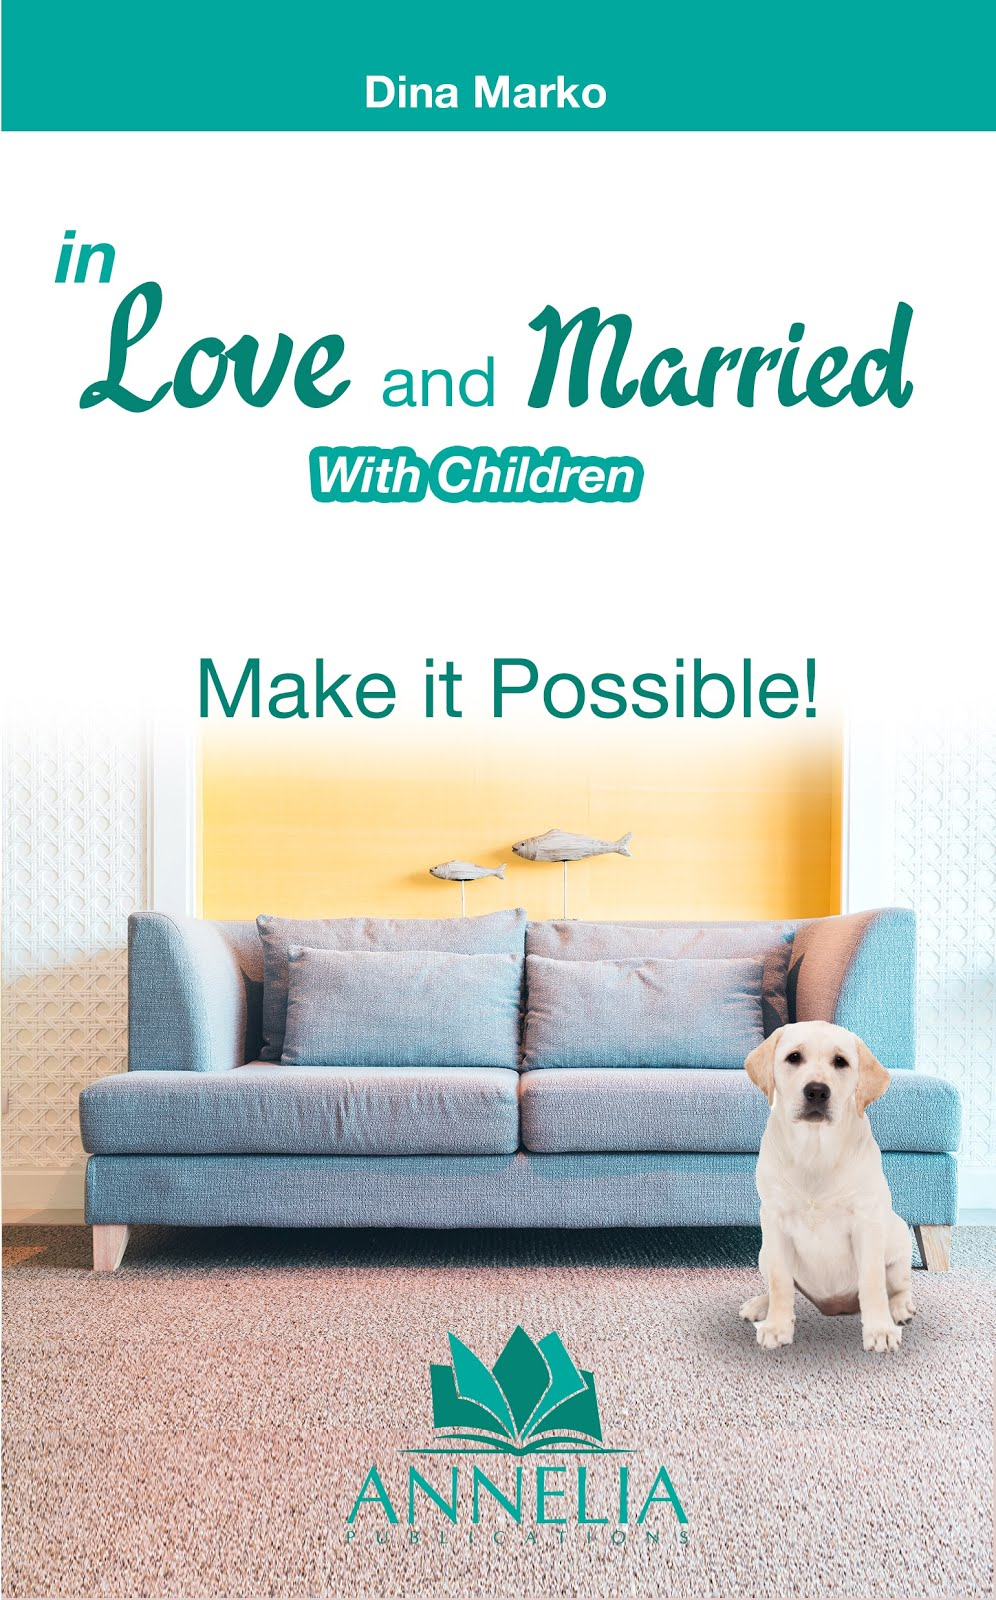 In love and married with children: Make it possible!